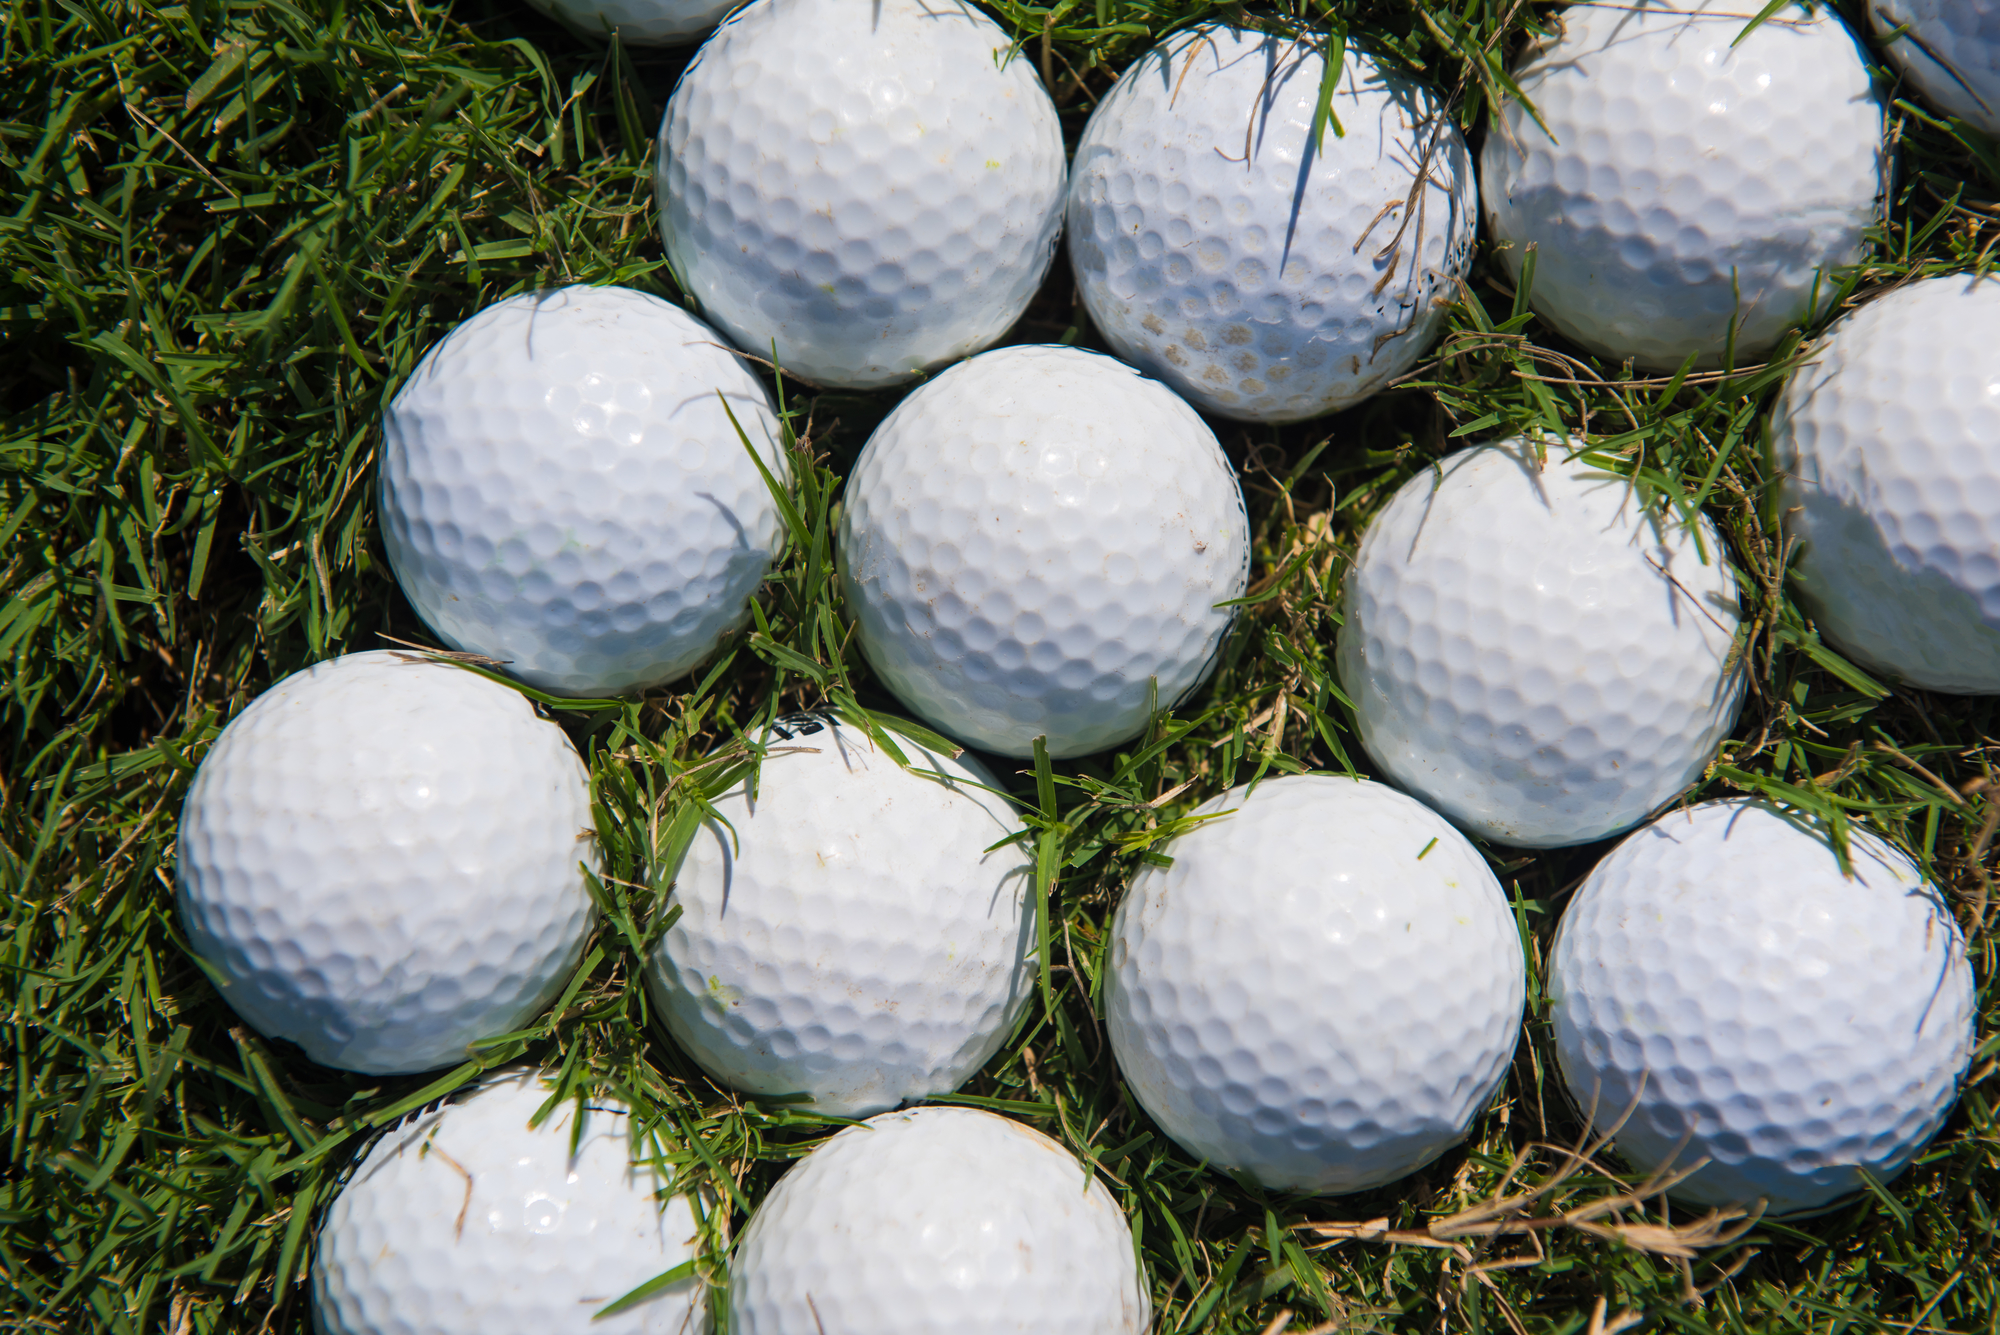 3ec98f24b2110 You re at a Junior golf tournament as a senior in high school. You ve  competed in many tournaments before. You know what your body needs to  perform ...